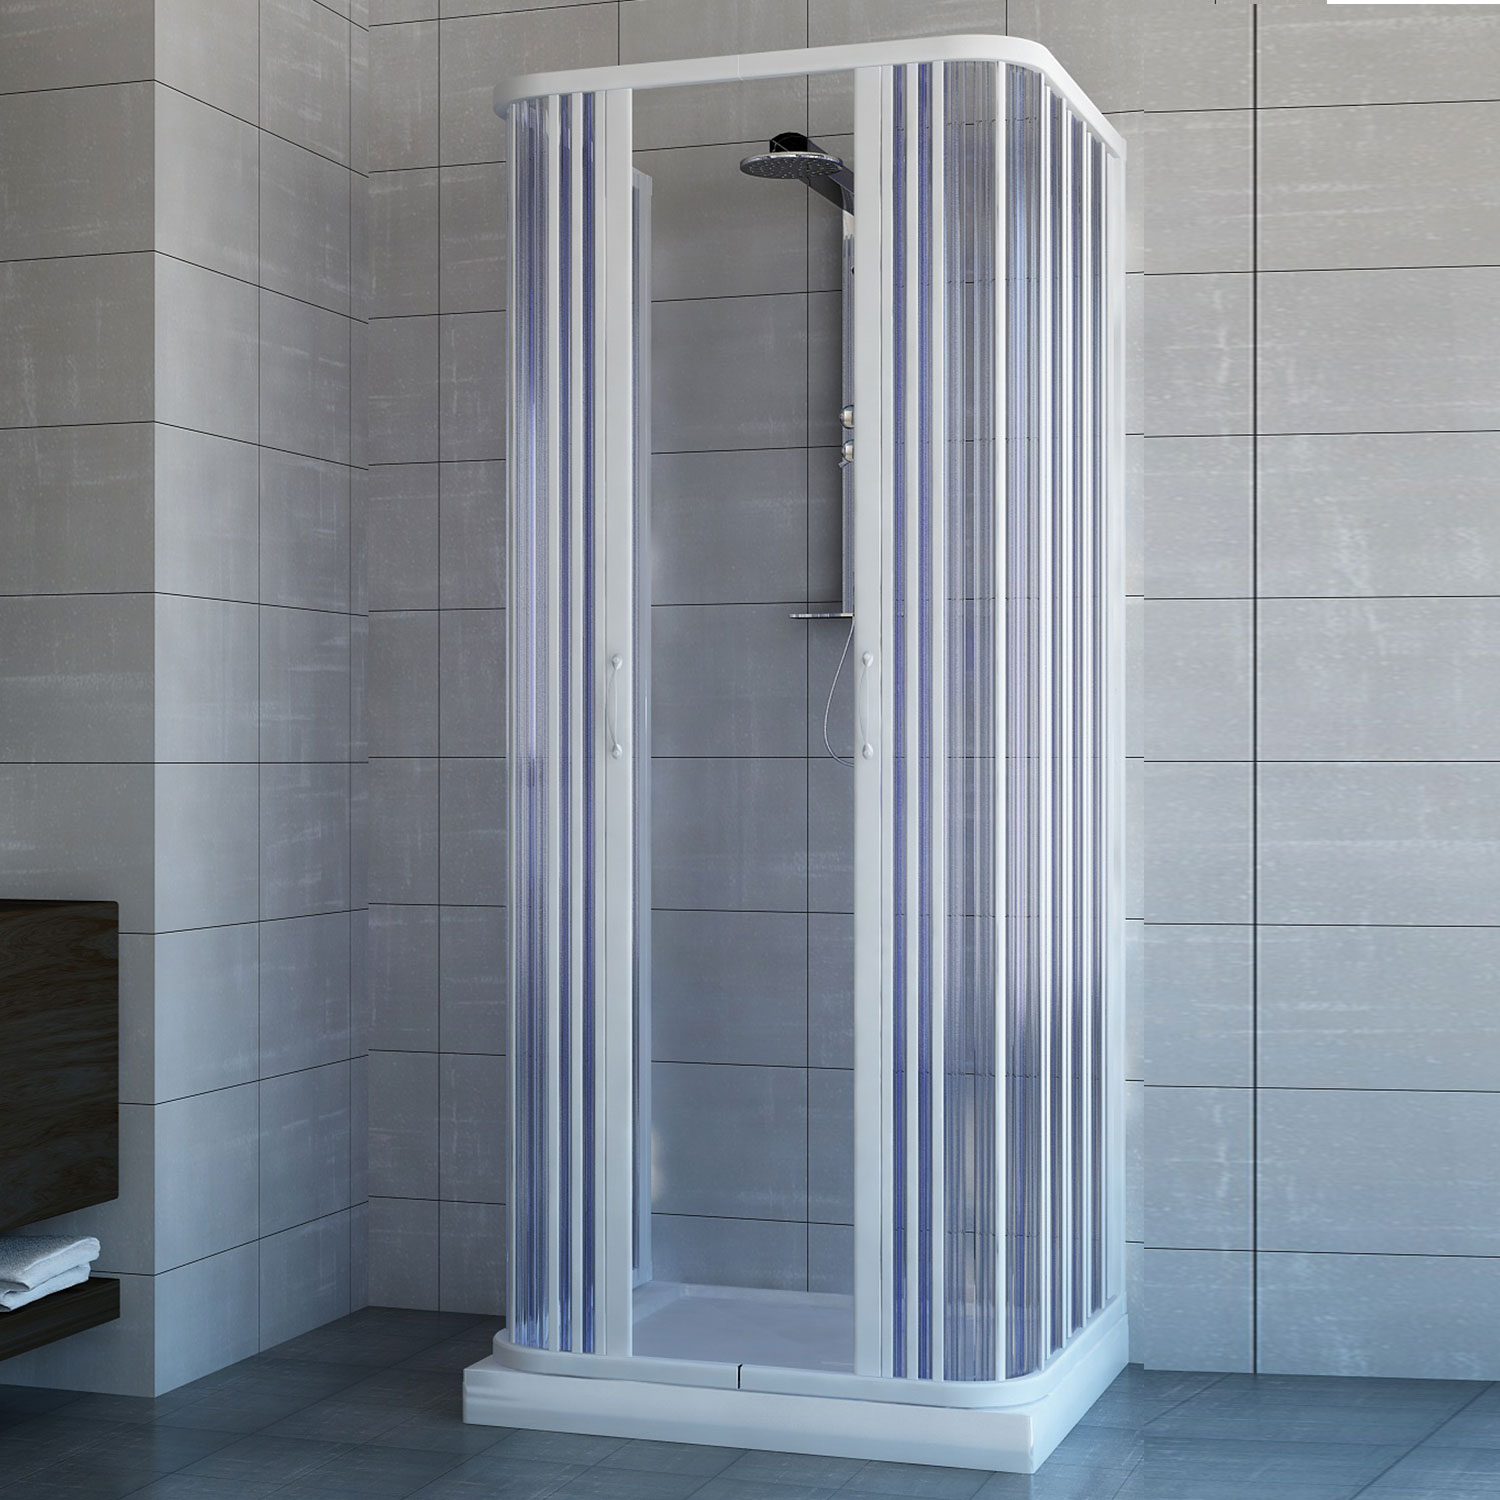 shower enclosure 3 sided central open quadrant cubicle plastic pvc folding doors. Black Bedroom Furniture Sets. Home Design Ideas